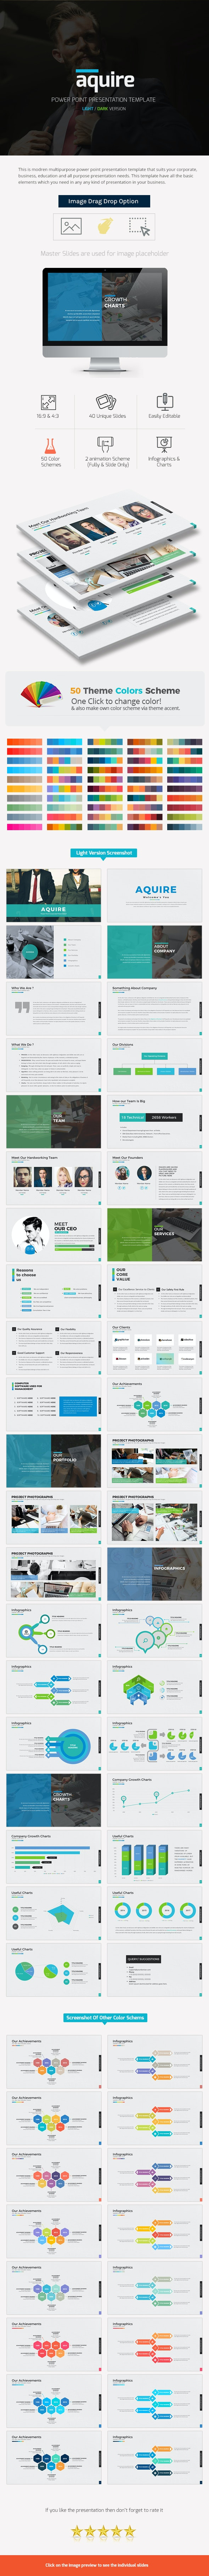 Aquire Power Point Presentation - Business PowerPoint Templates